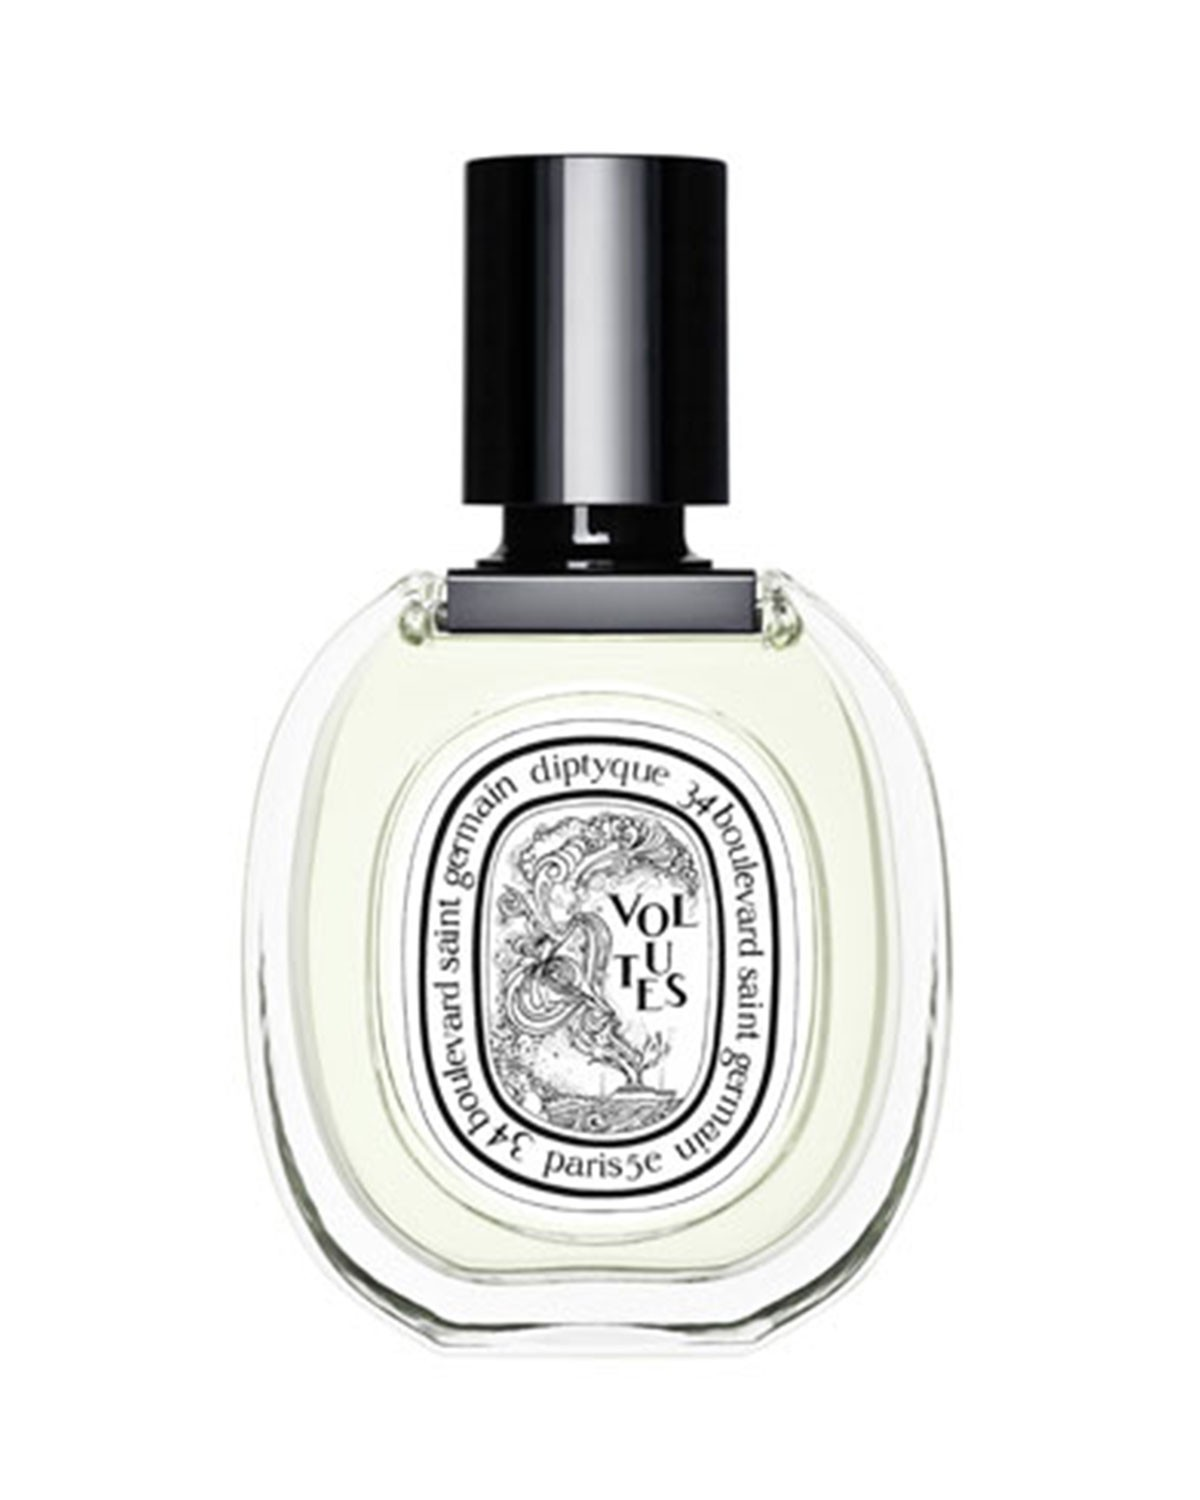 Volutes Eau de Toilette, 1.7oz - Diptyque - (7oz )